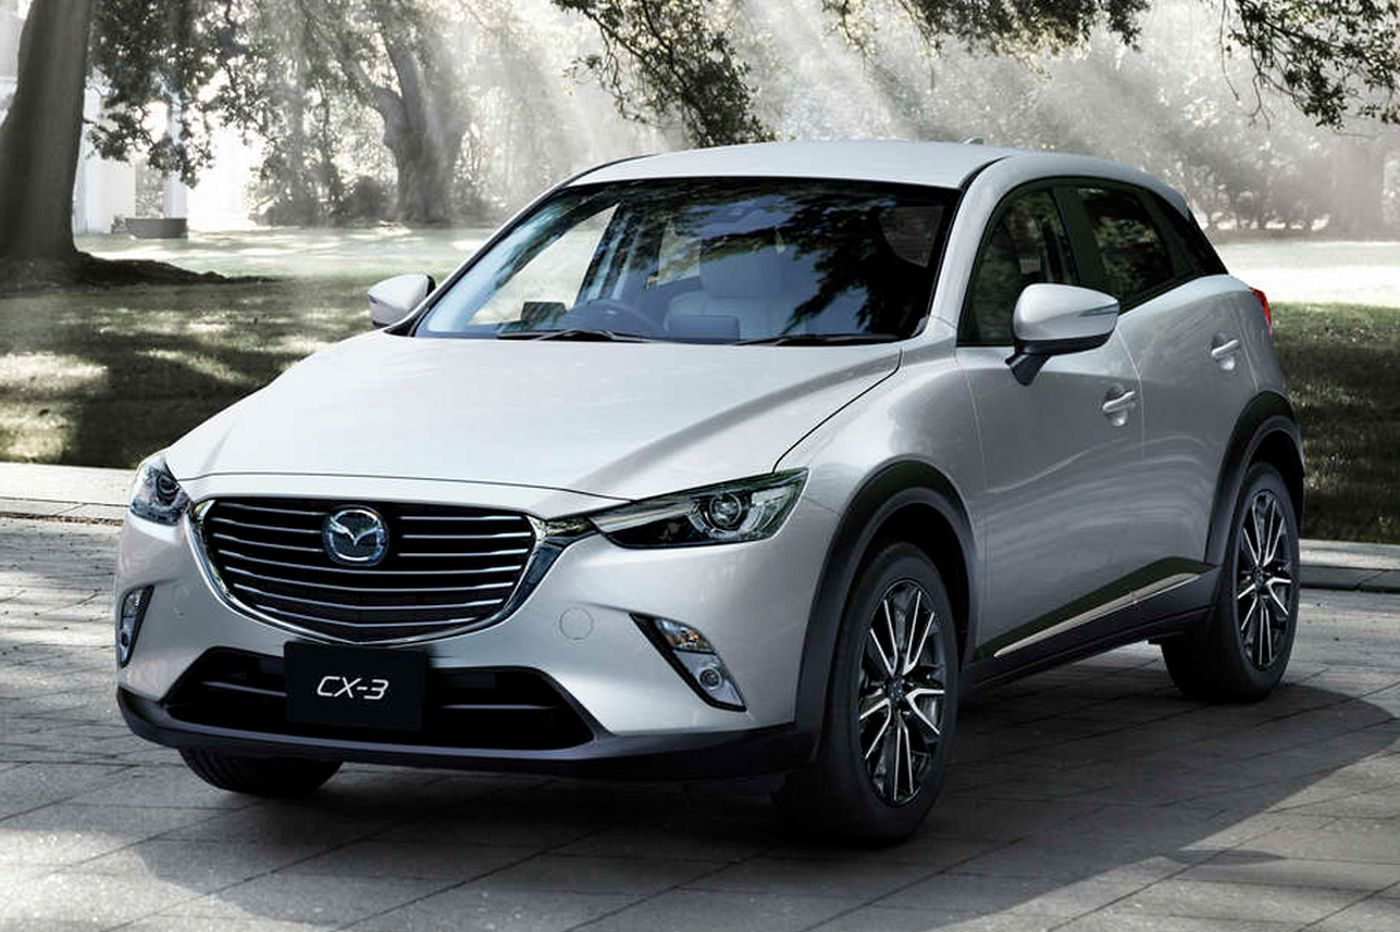 Gizmo Guy: Mazda CX-3 steals the show in safety, flair and fun